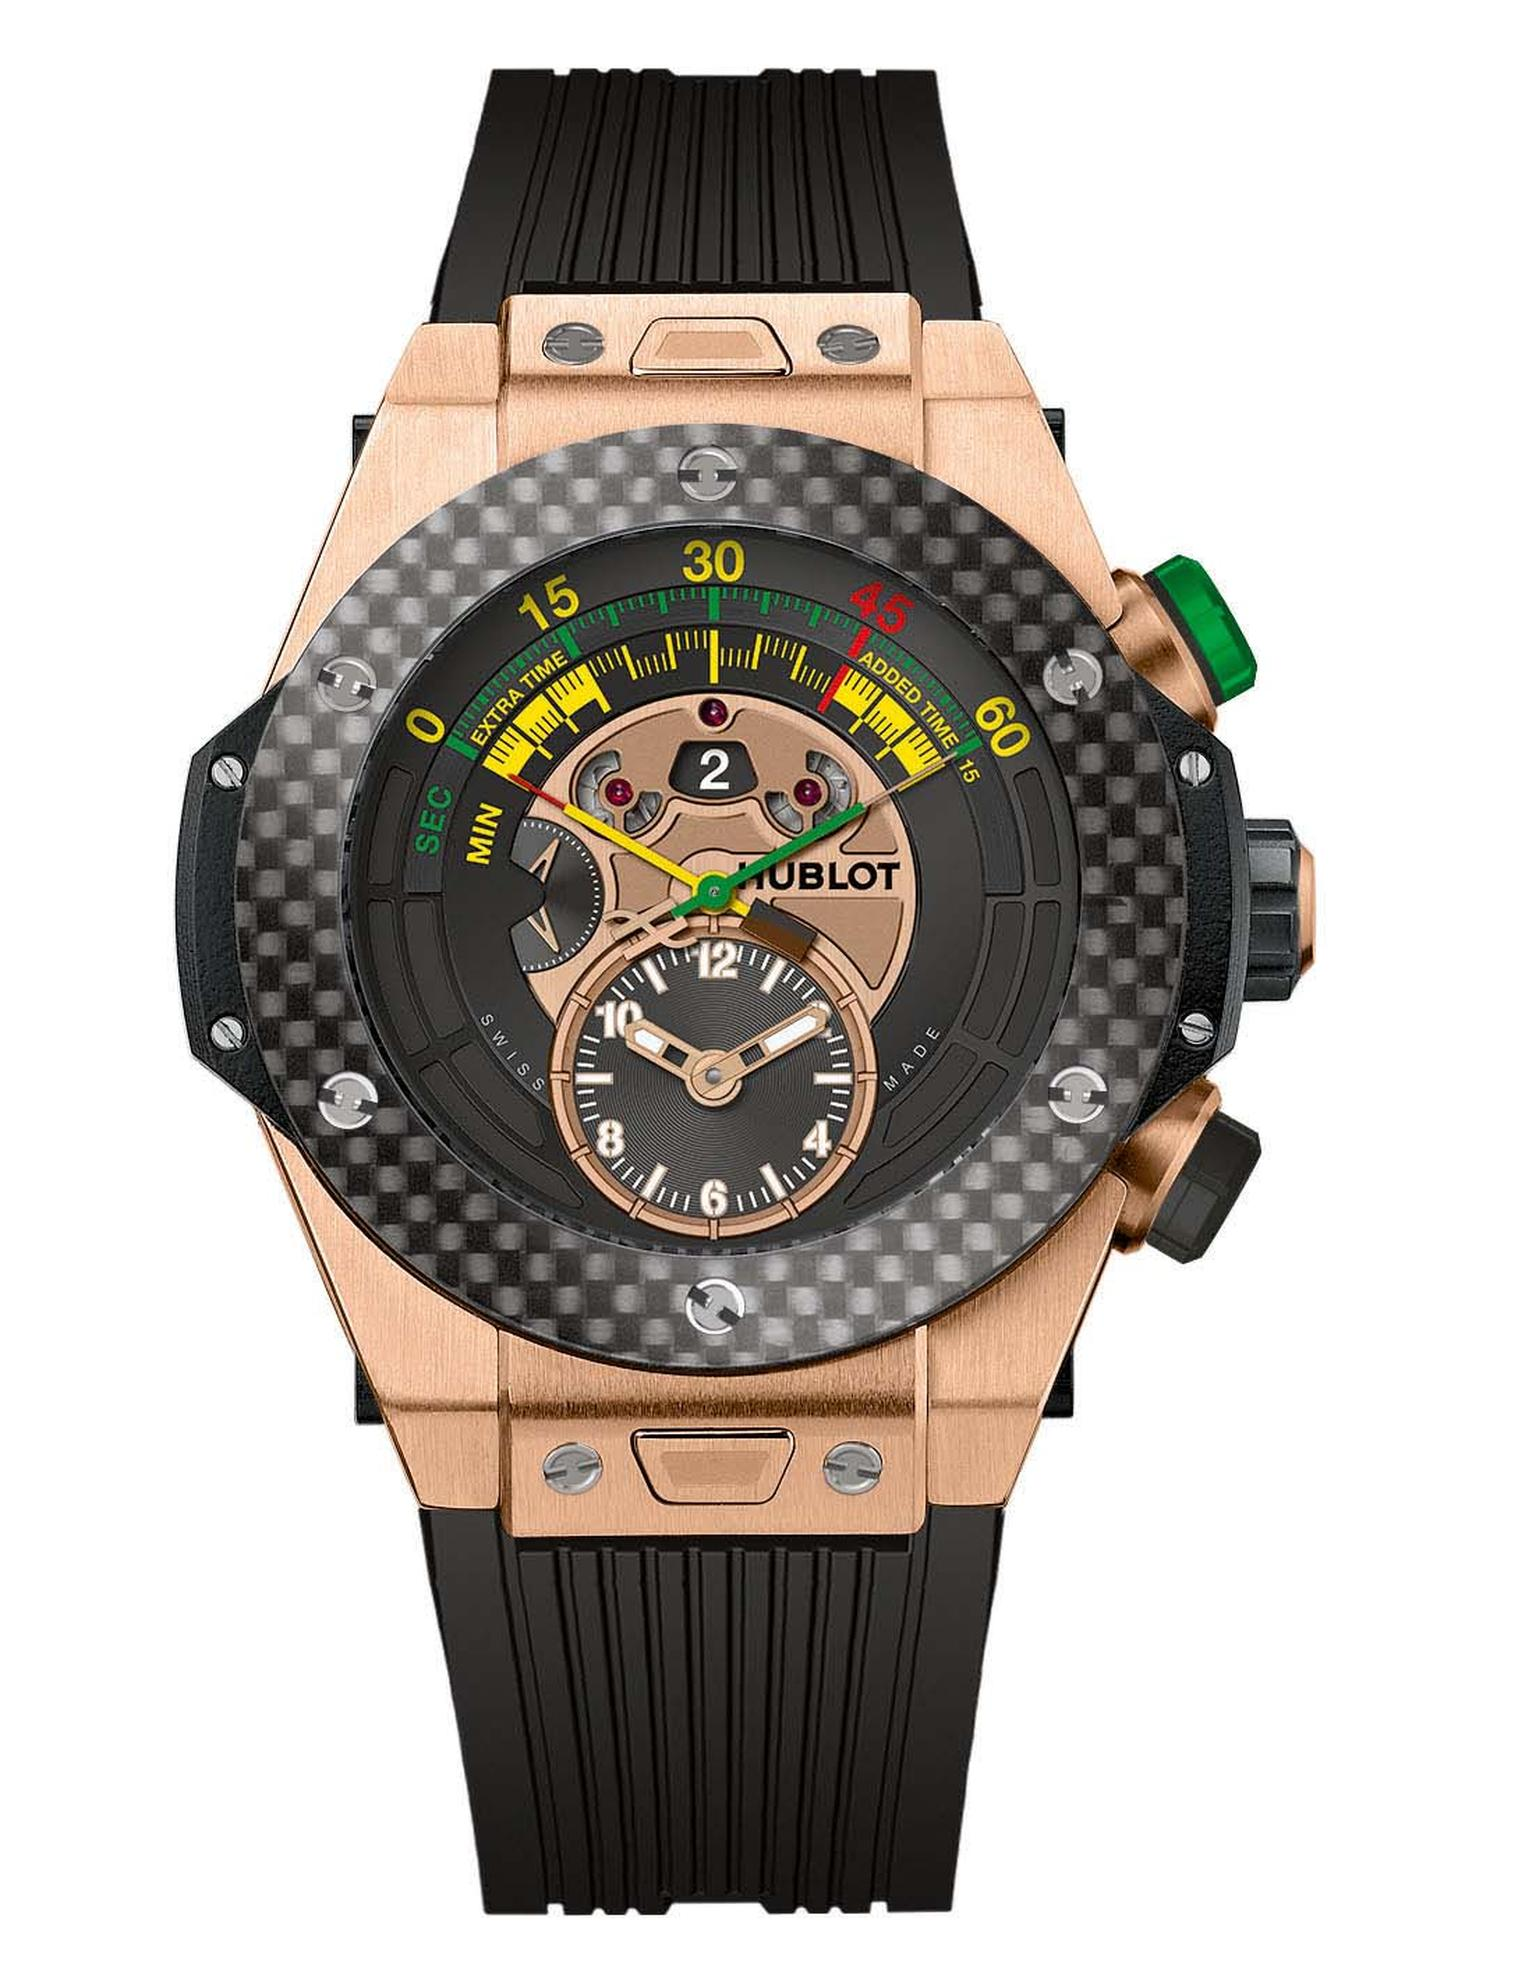 Official watch of the 2014 FIFA World Cup in Brazil, Hublot's Big Bang Unico Bi-Retrograde Chrono is available in two models, including this King Gold version with a carbon-fibre bezel, limited to 100 pieces.